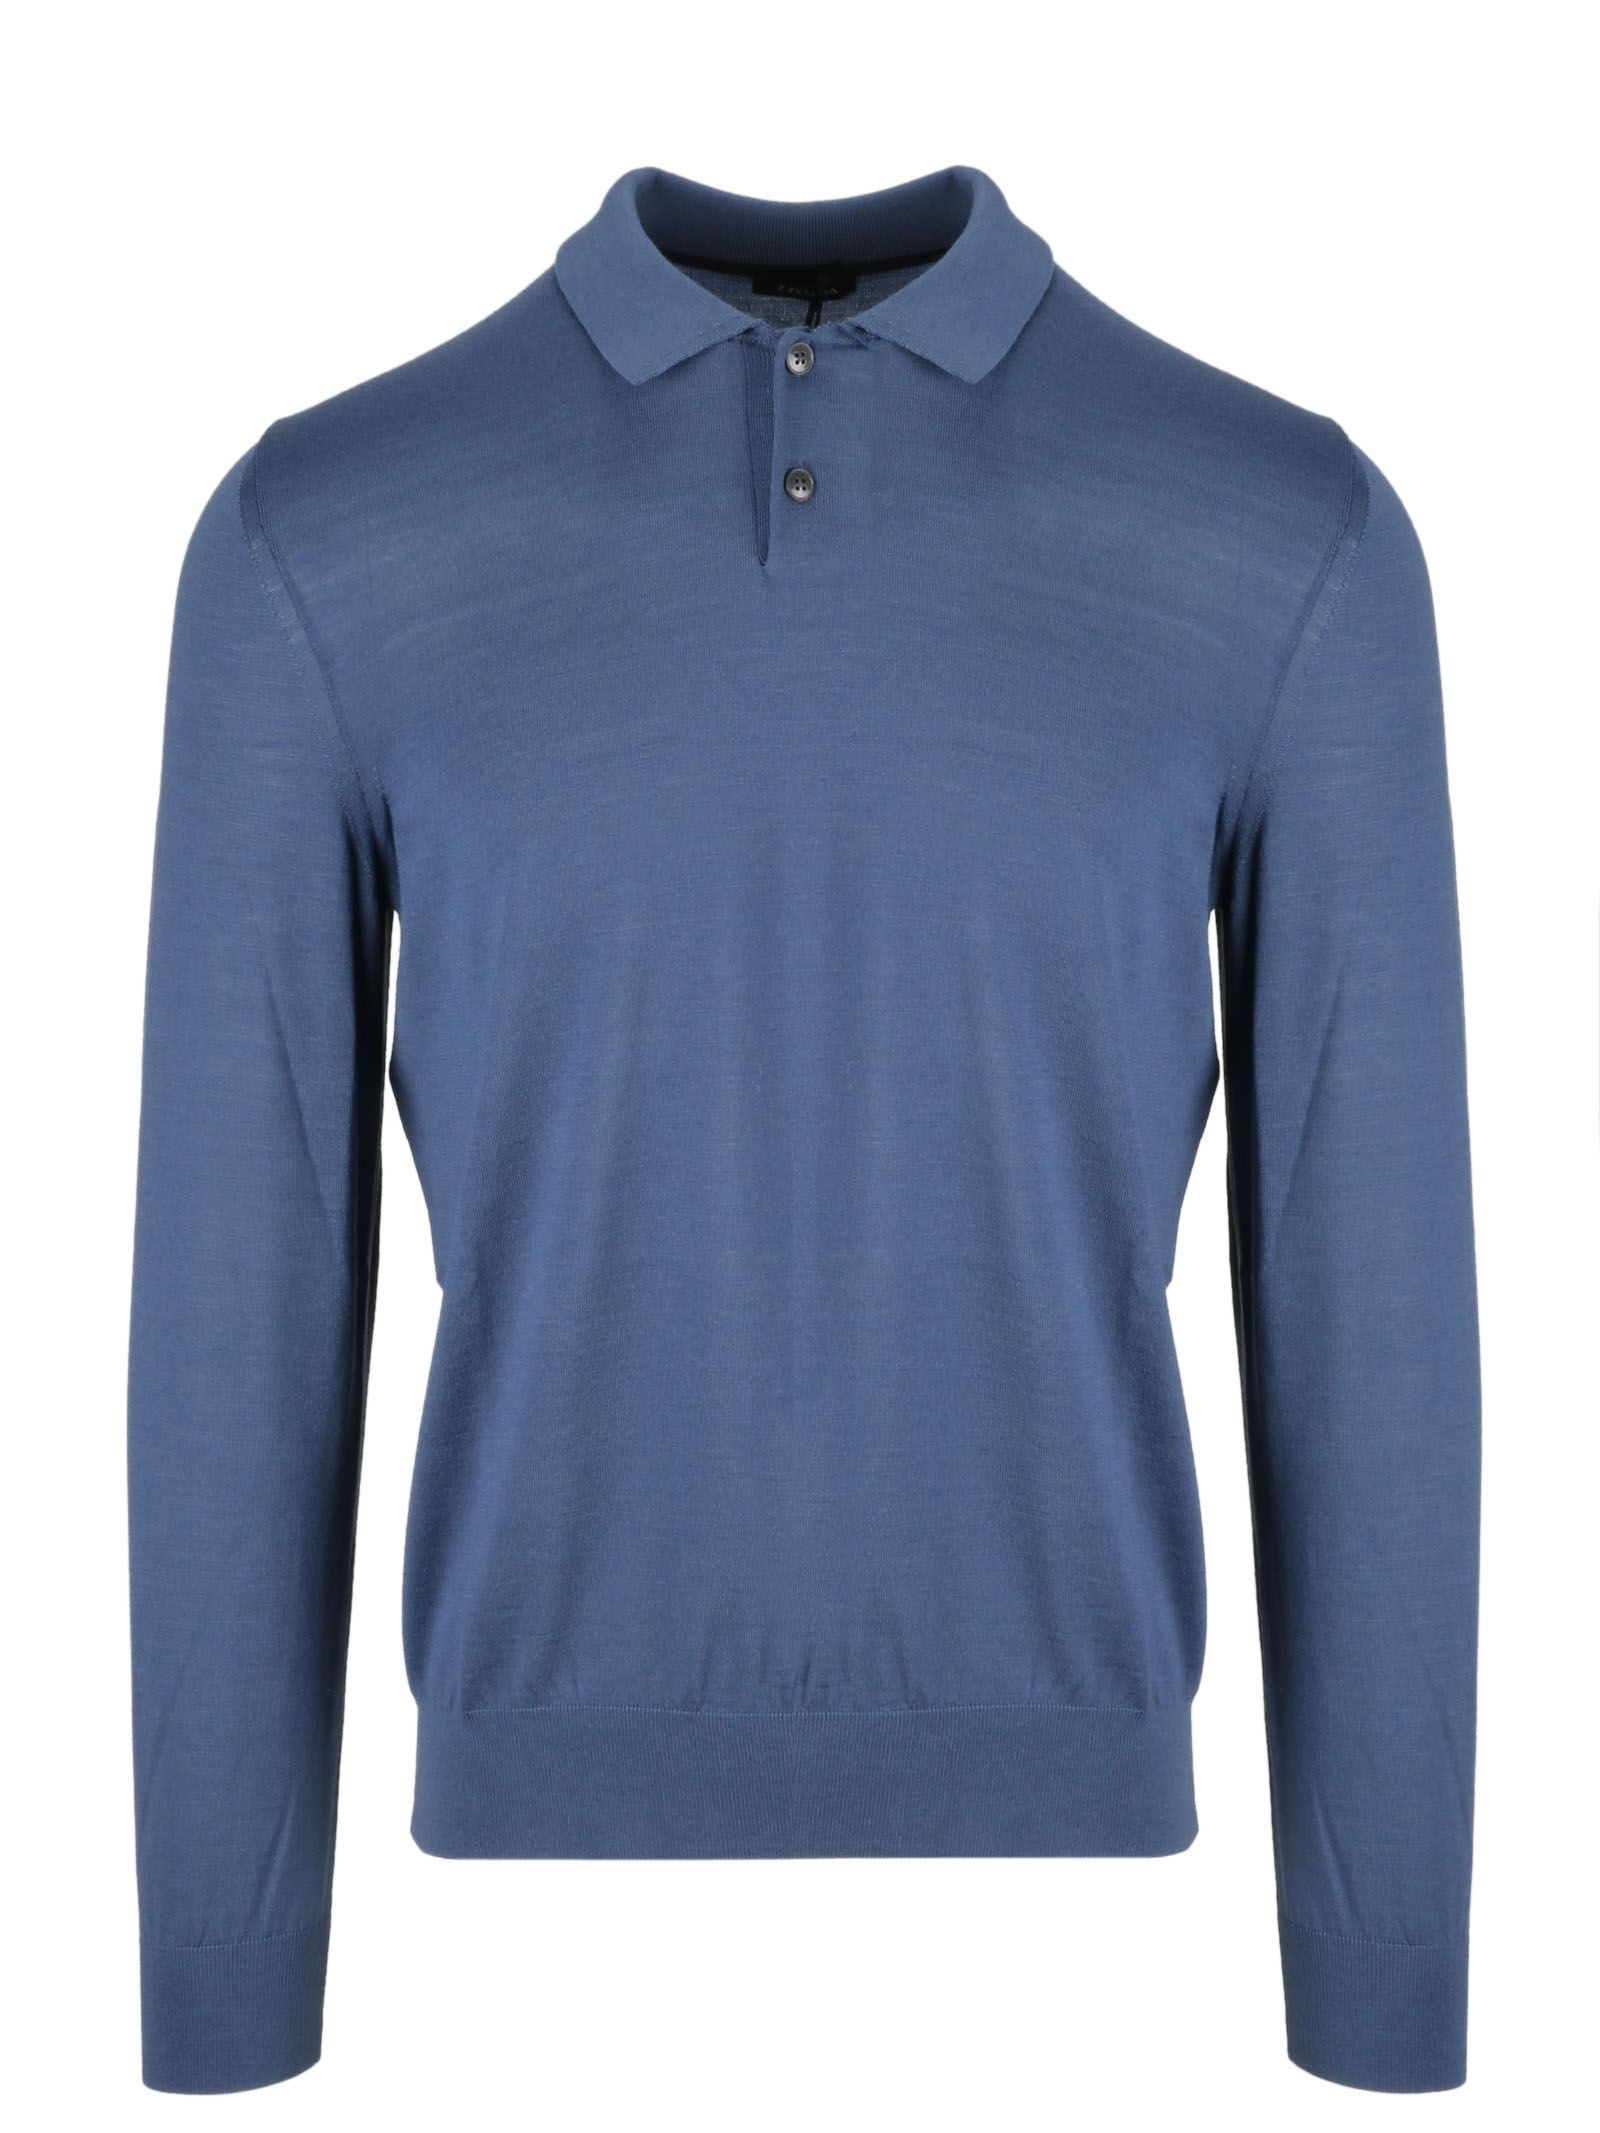 86a4f7ada0585 Z ZEGNA LONG SLEEVE FITTED POLO SHIRT. #zzegna #cloth | Z Zegna ...